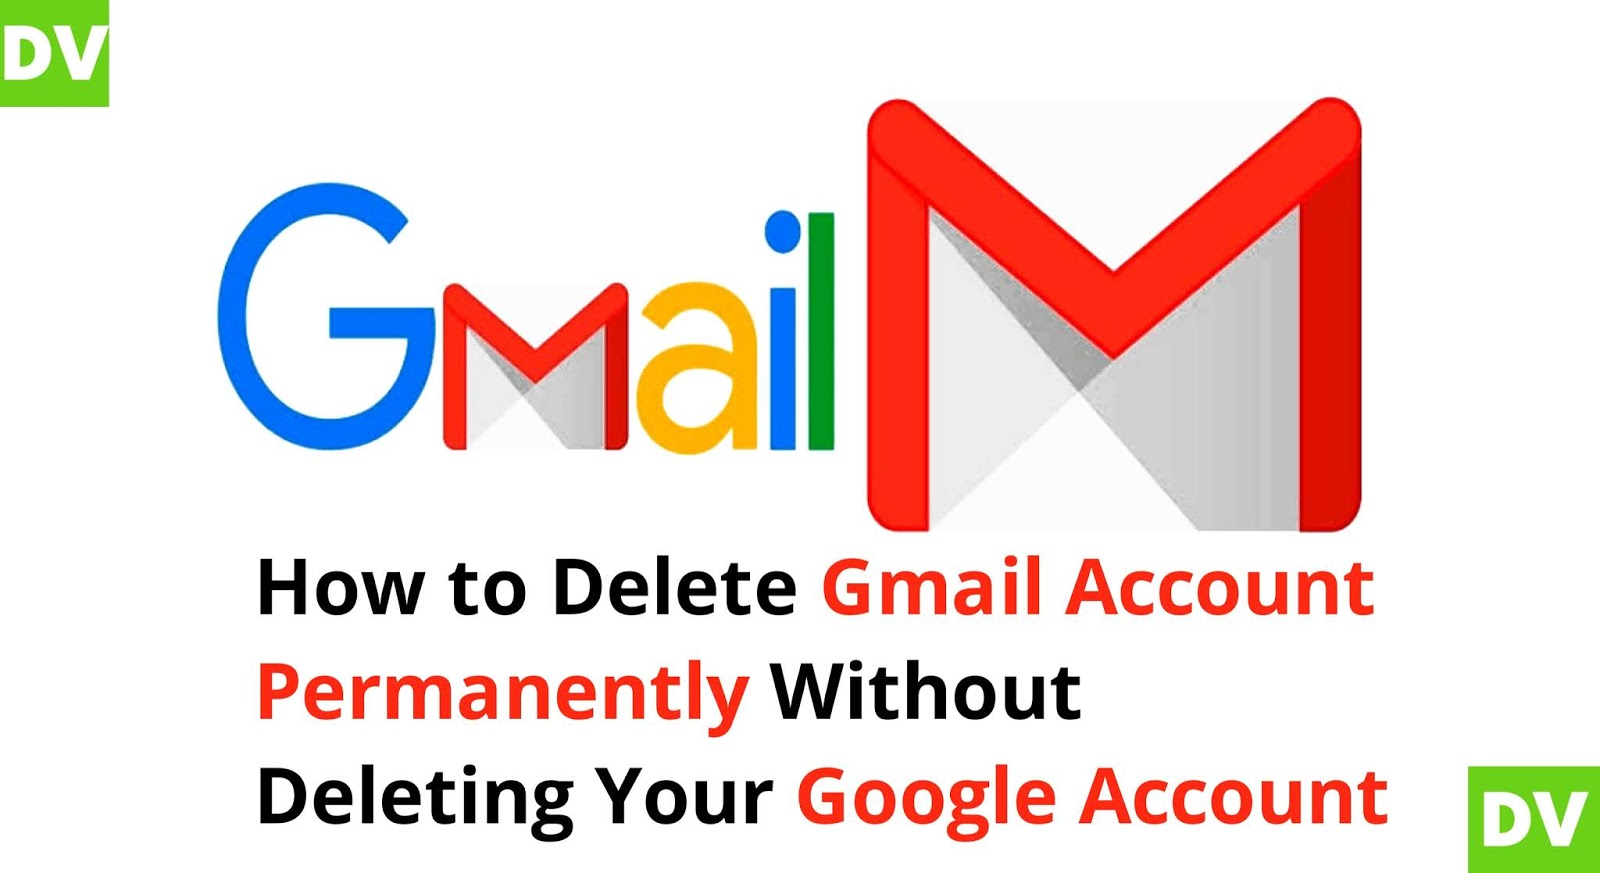 Delete g-mail account permanently